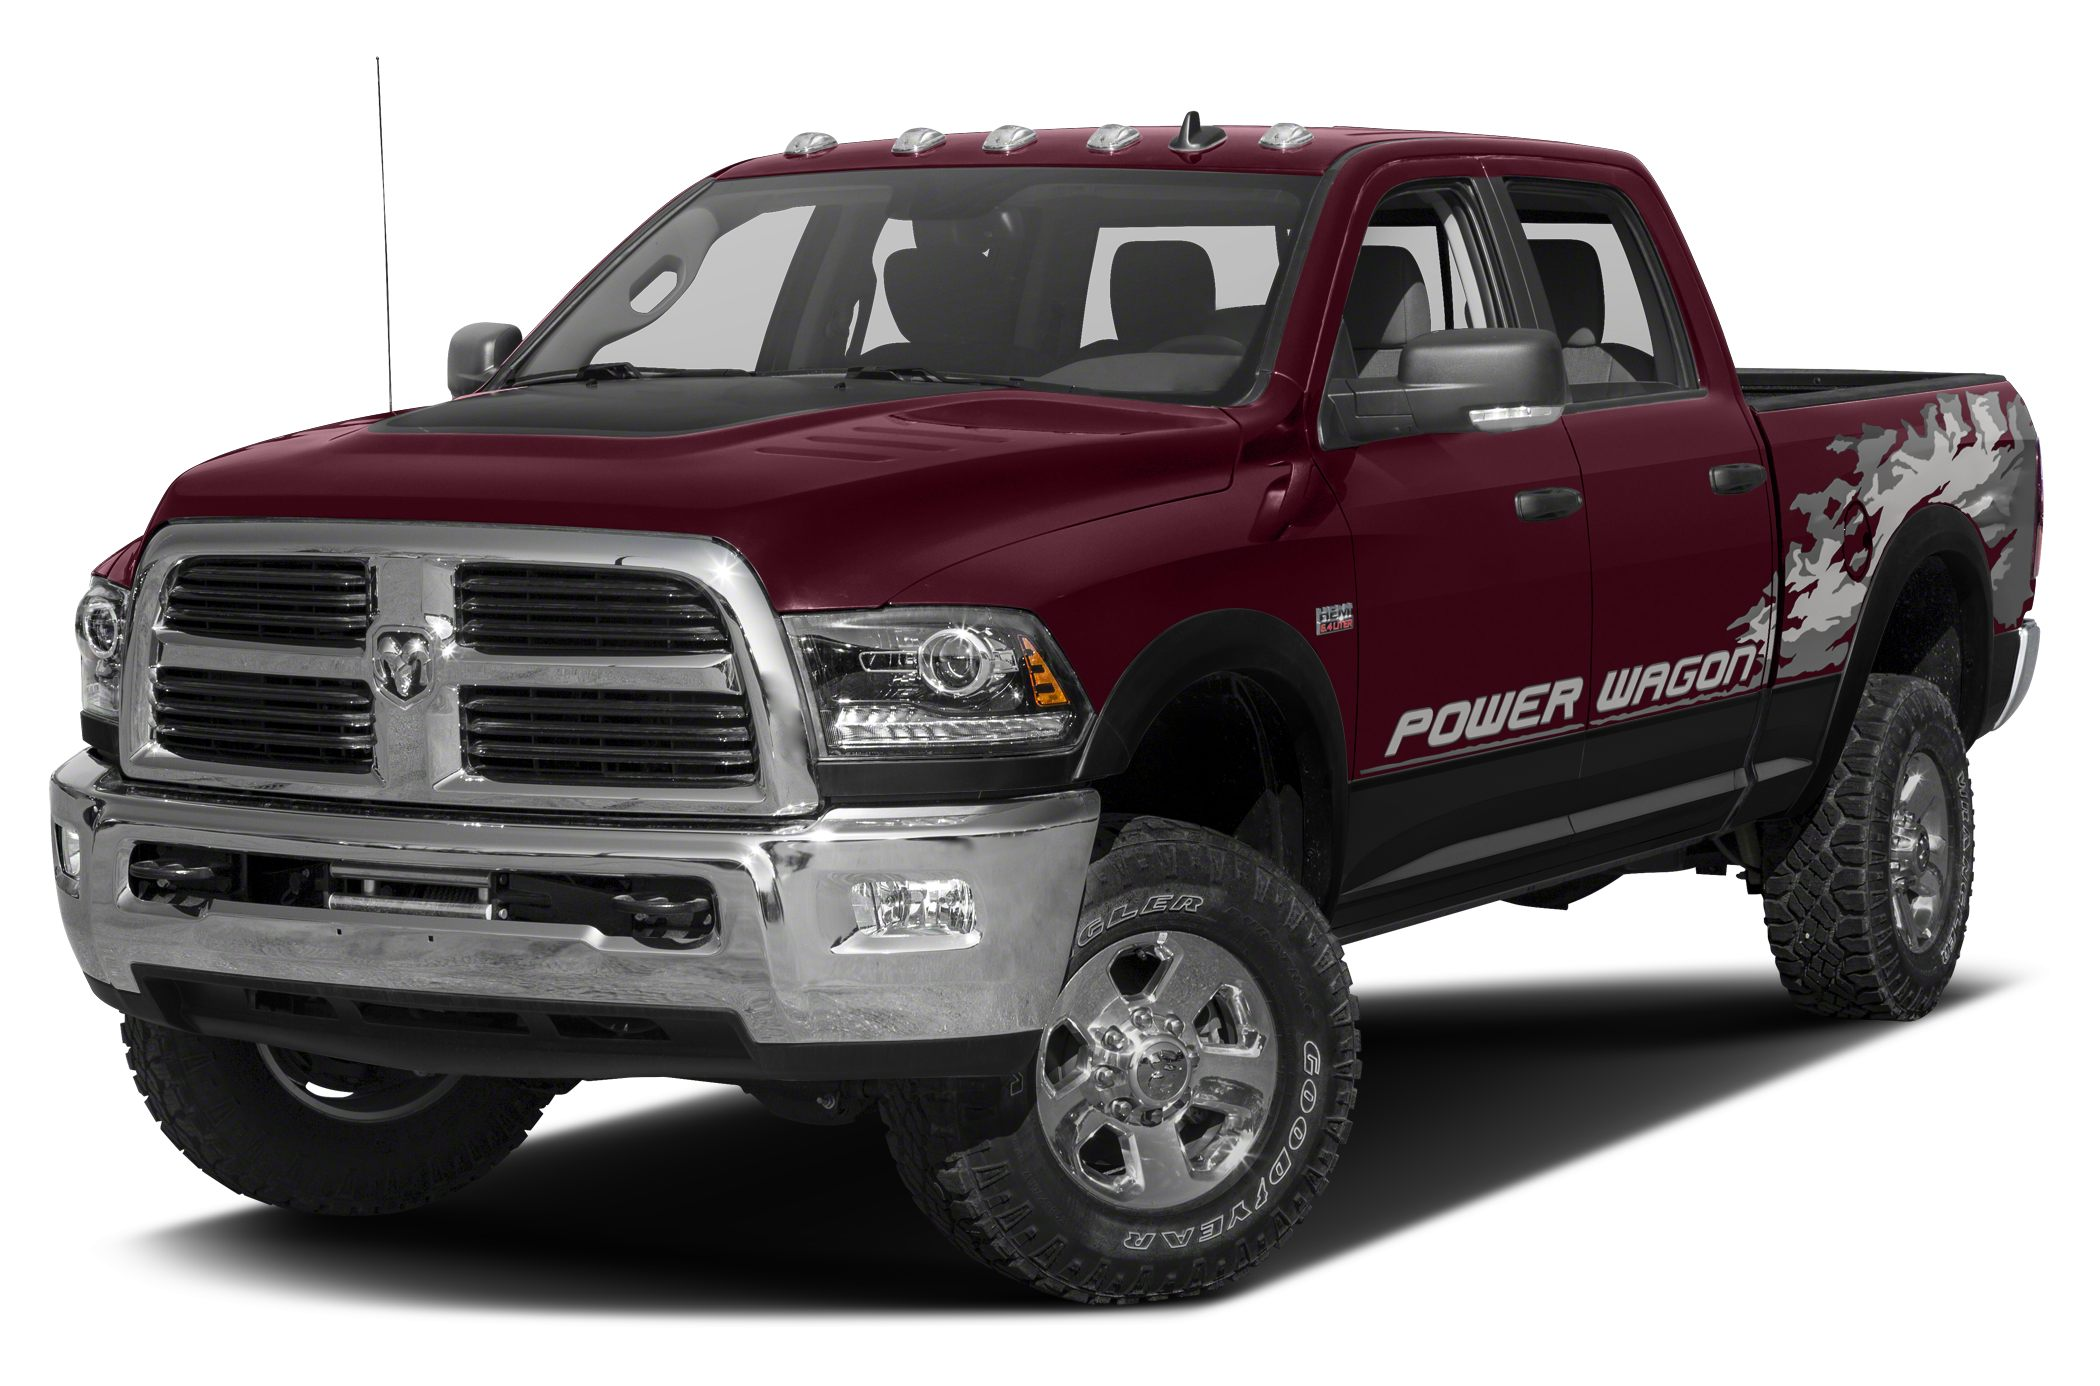 2015 RAM 2500 Power Wagon 4x4 Crew Cab 149 in WB Specs and Prices